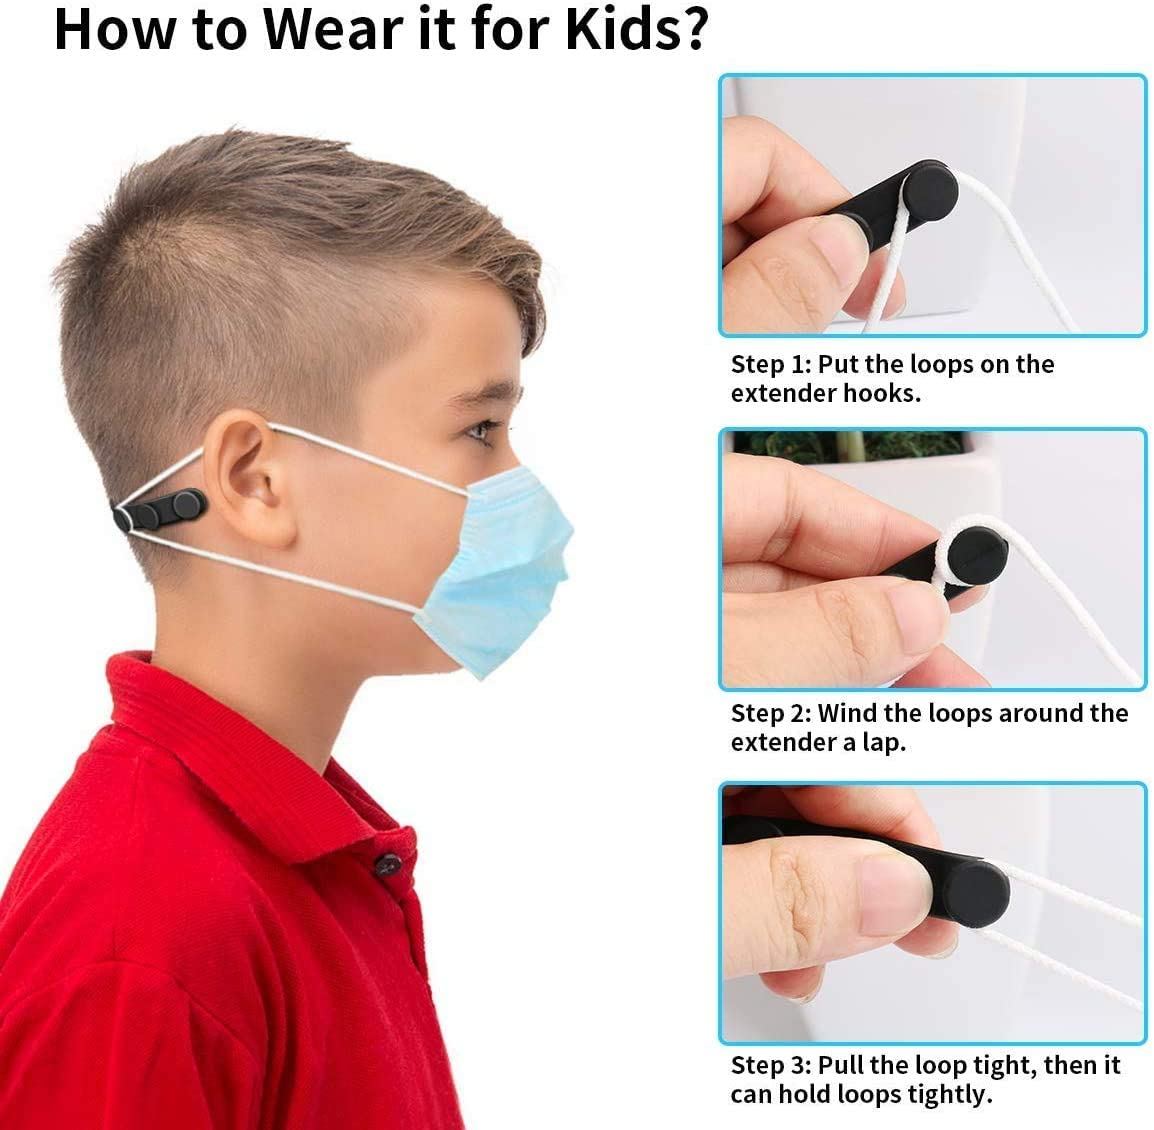 Elastic Ear Strap Hook Holder for Kids /& Adults Relieve Ear Pain Anti-Tightening Soft Ear Saver Protector Silicone Mask Strap Extender with Buttons Black 10pcs Adjustable Anti-Slip Mask Extender